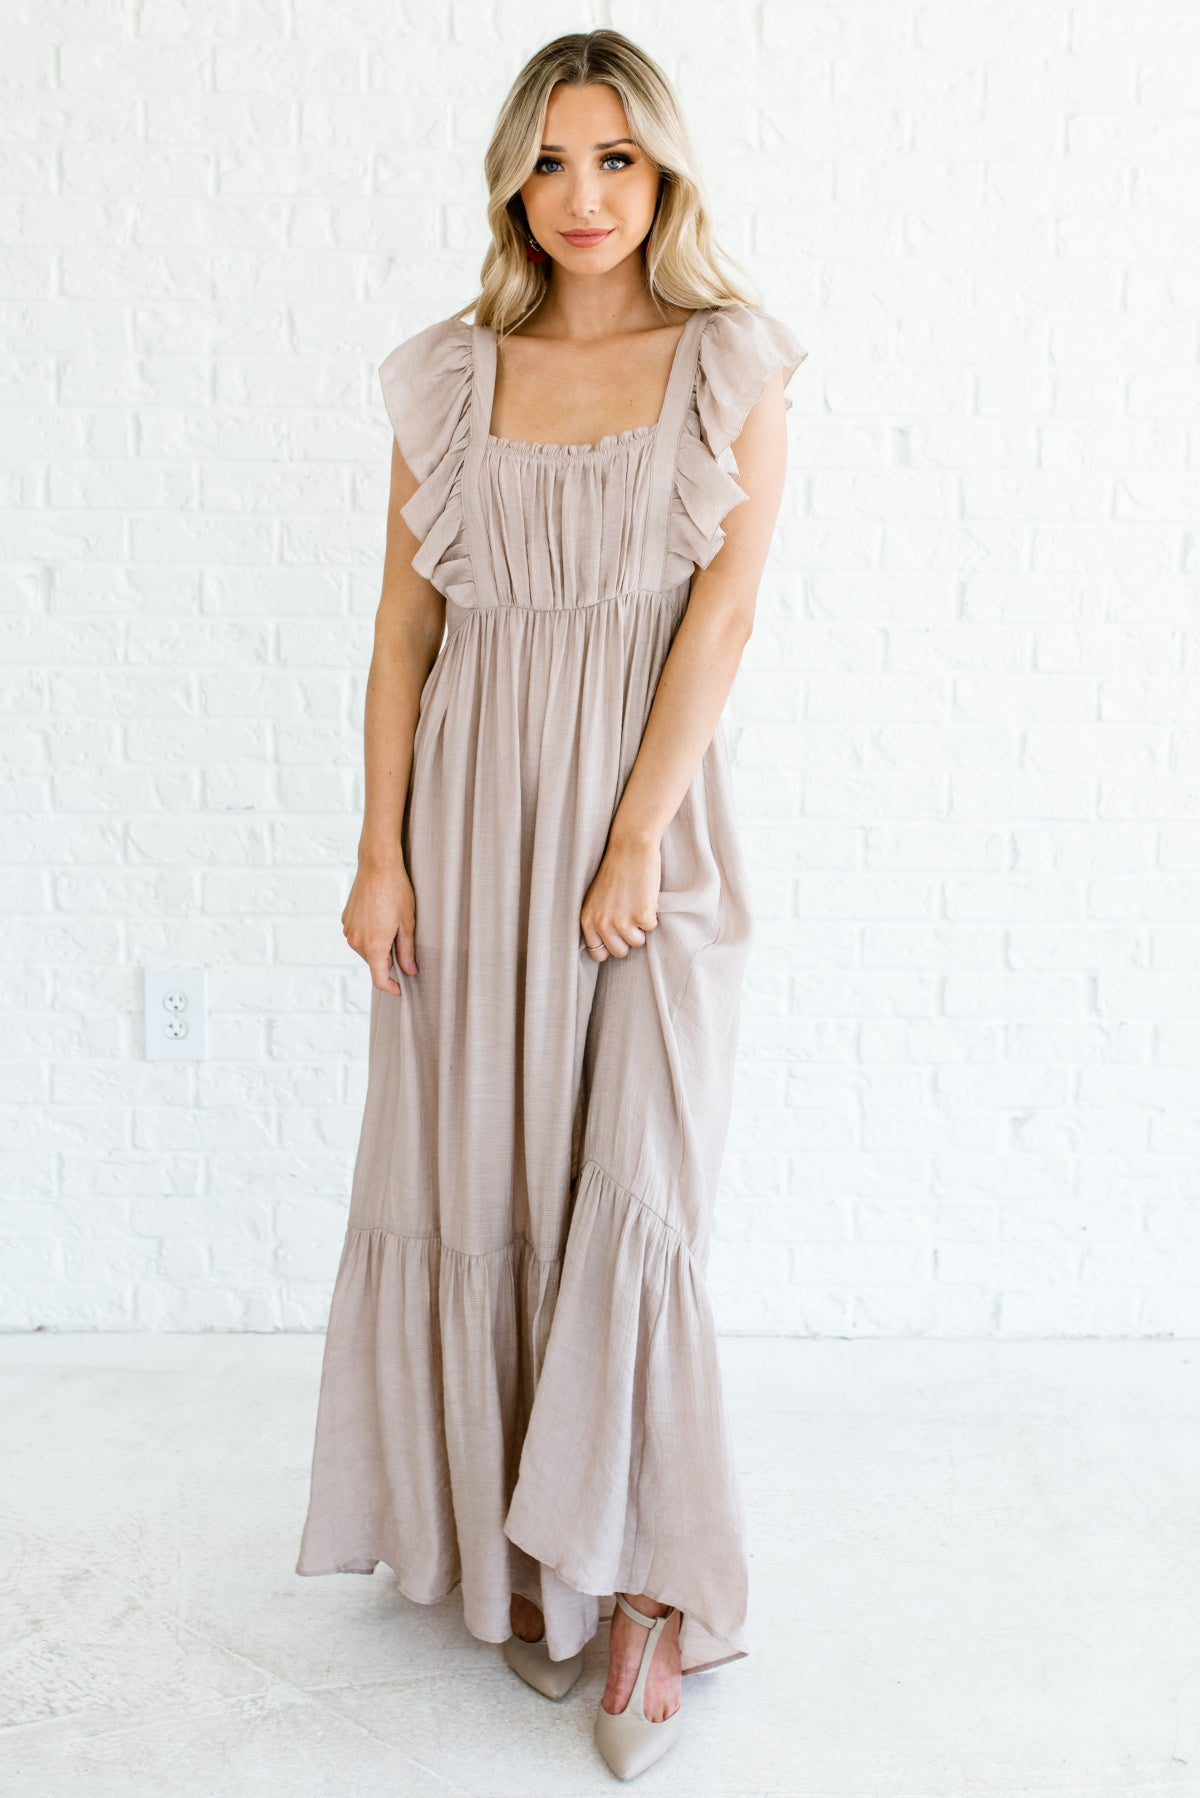 Taupe Brown Maxi Length Ruffle Accent Boutique Dresses for Women